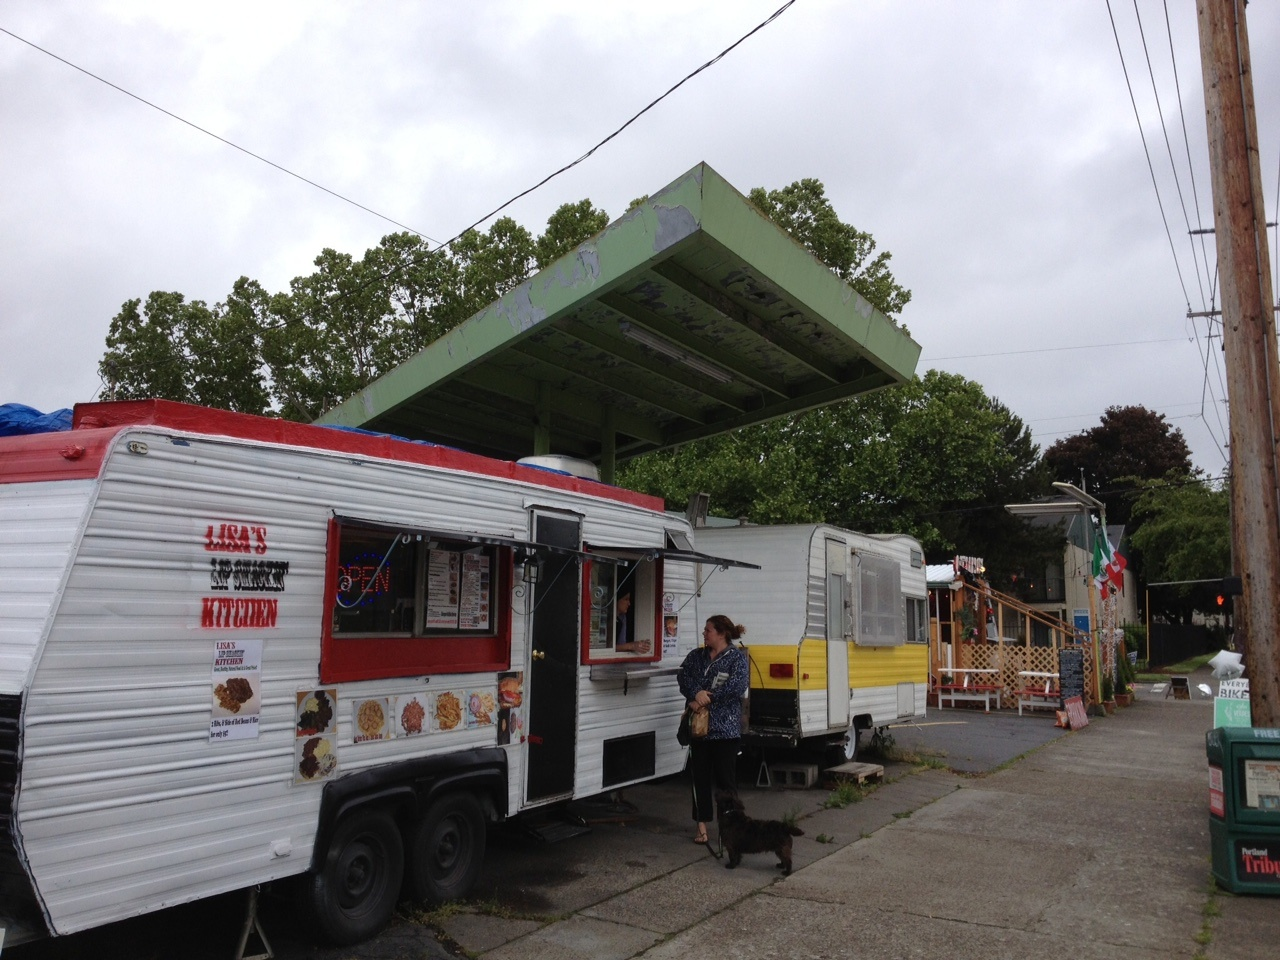 Portland has become a mecca for foodies partly as a result of the numerous food carts that transform surface parking and vacant lots into outdoor food courts - not just in the downtown but around the city.